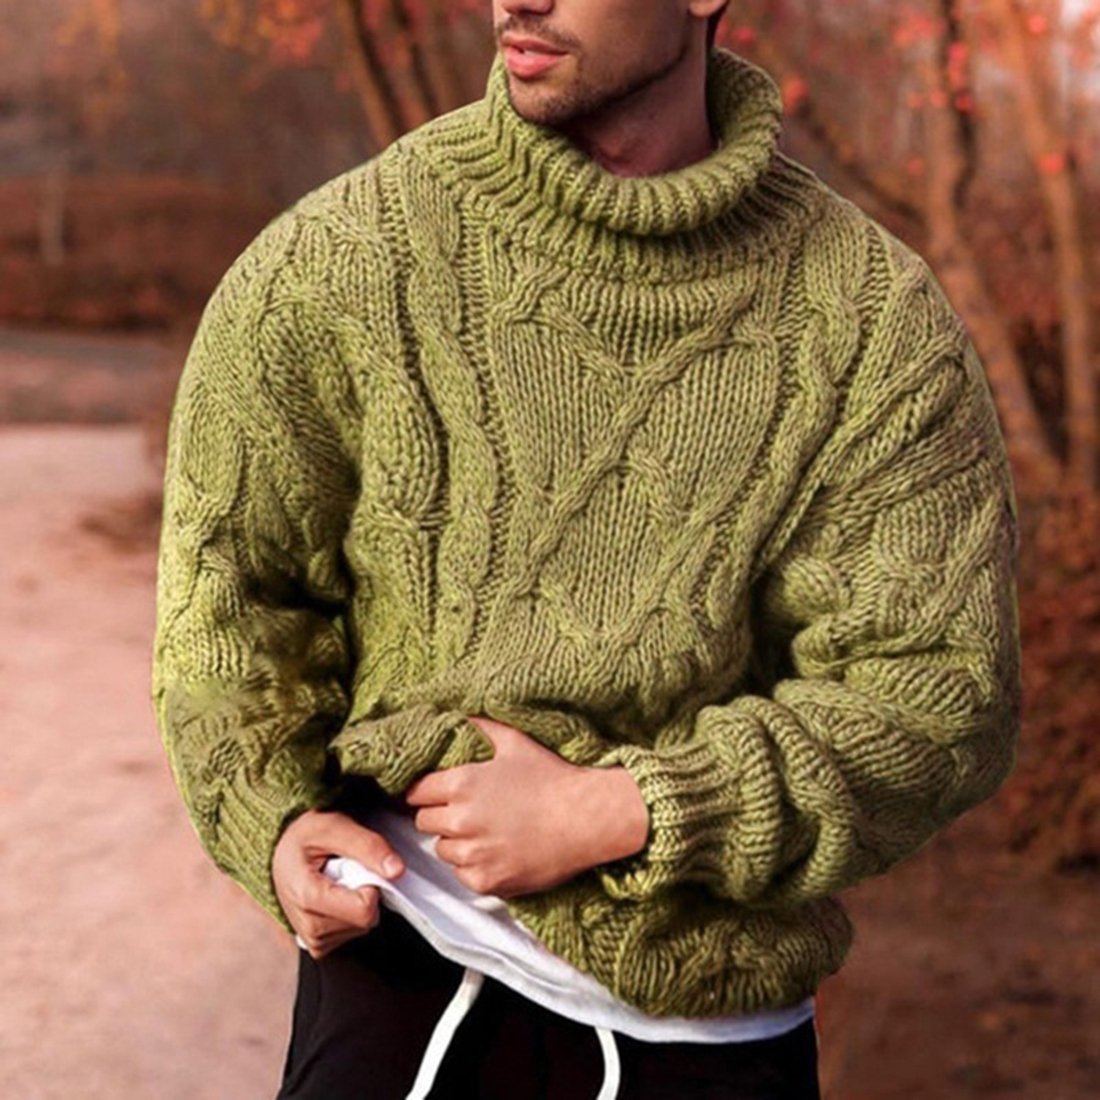 2020 Turtleneck Sweater Men Knitted Pullovers Autumn Winter Clothes Oversize Sweater Casual Men Tops Tricot Ribbed Pull Homme